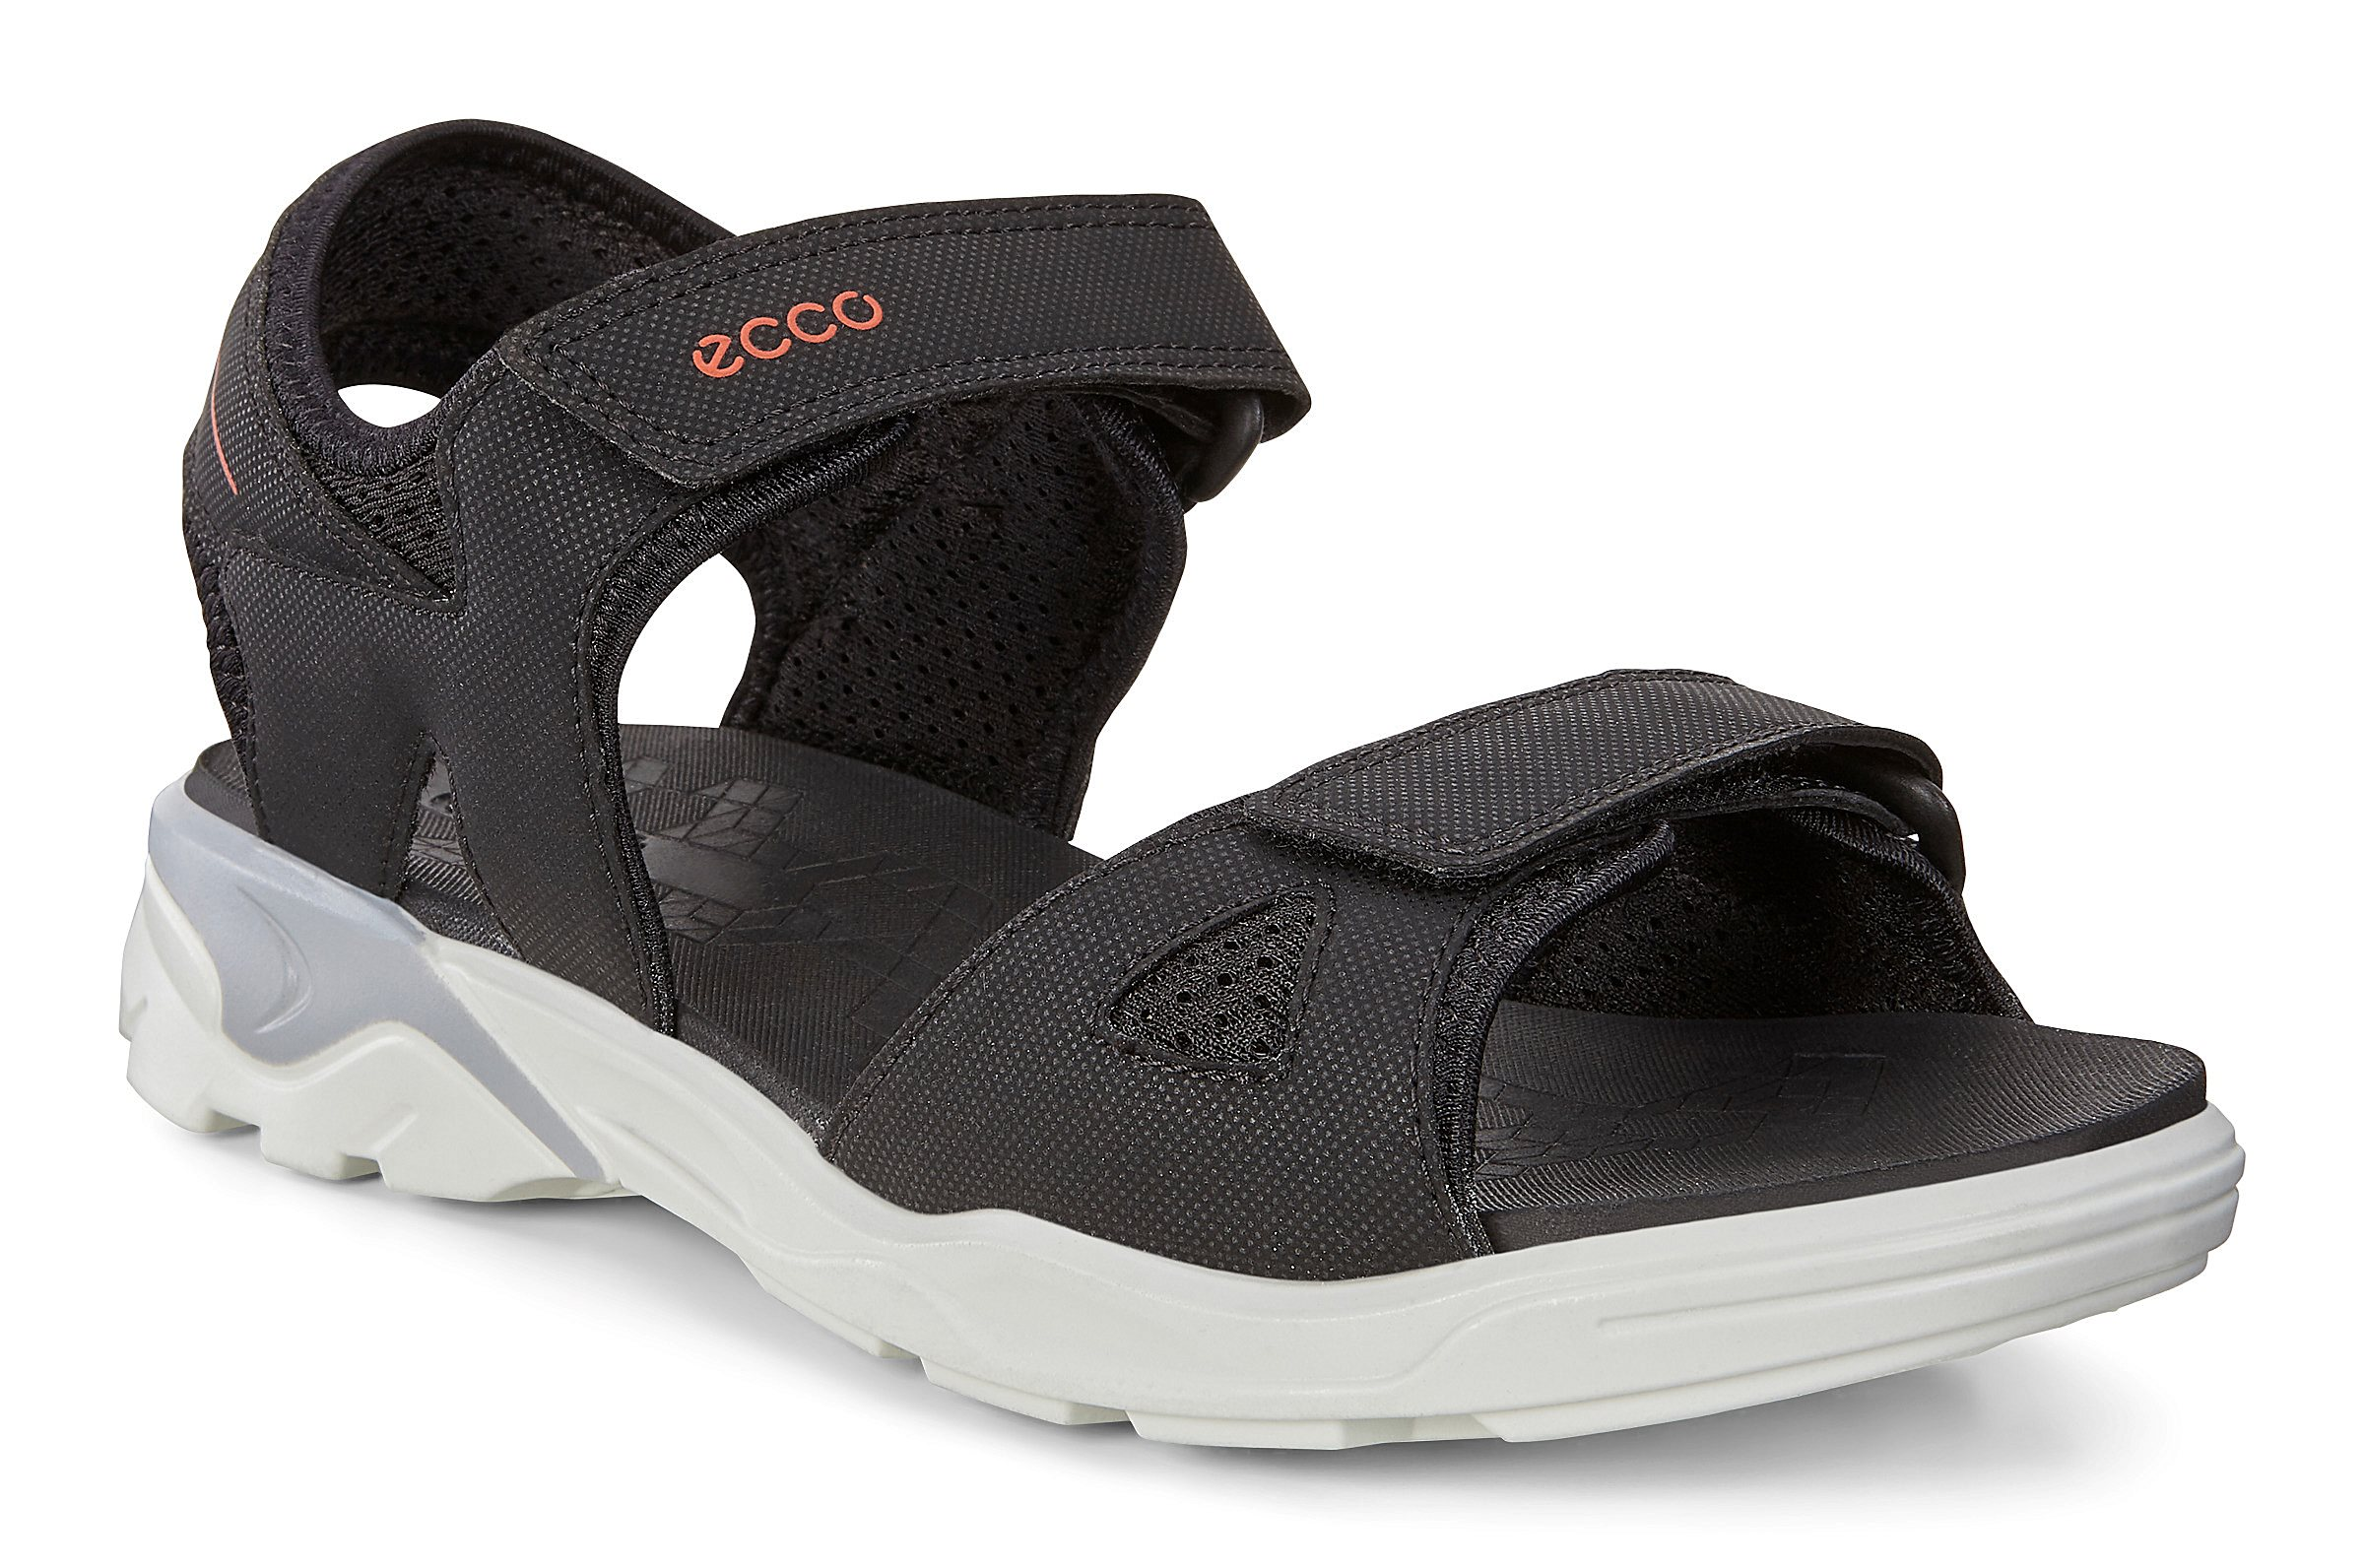 3301acd2546 ECCO BIOM RAFT Kids Boys Sandals